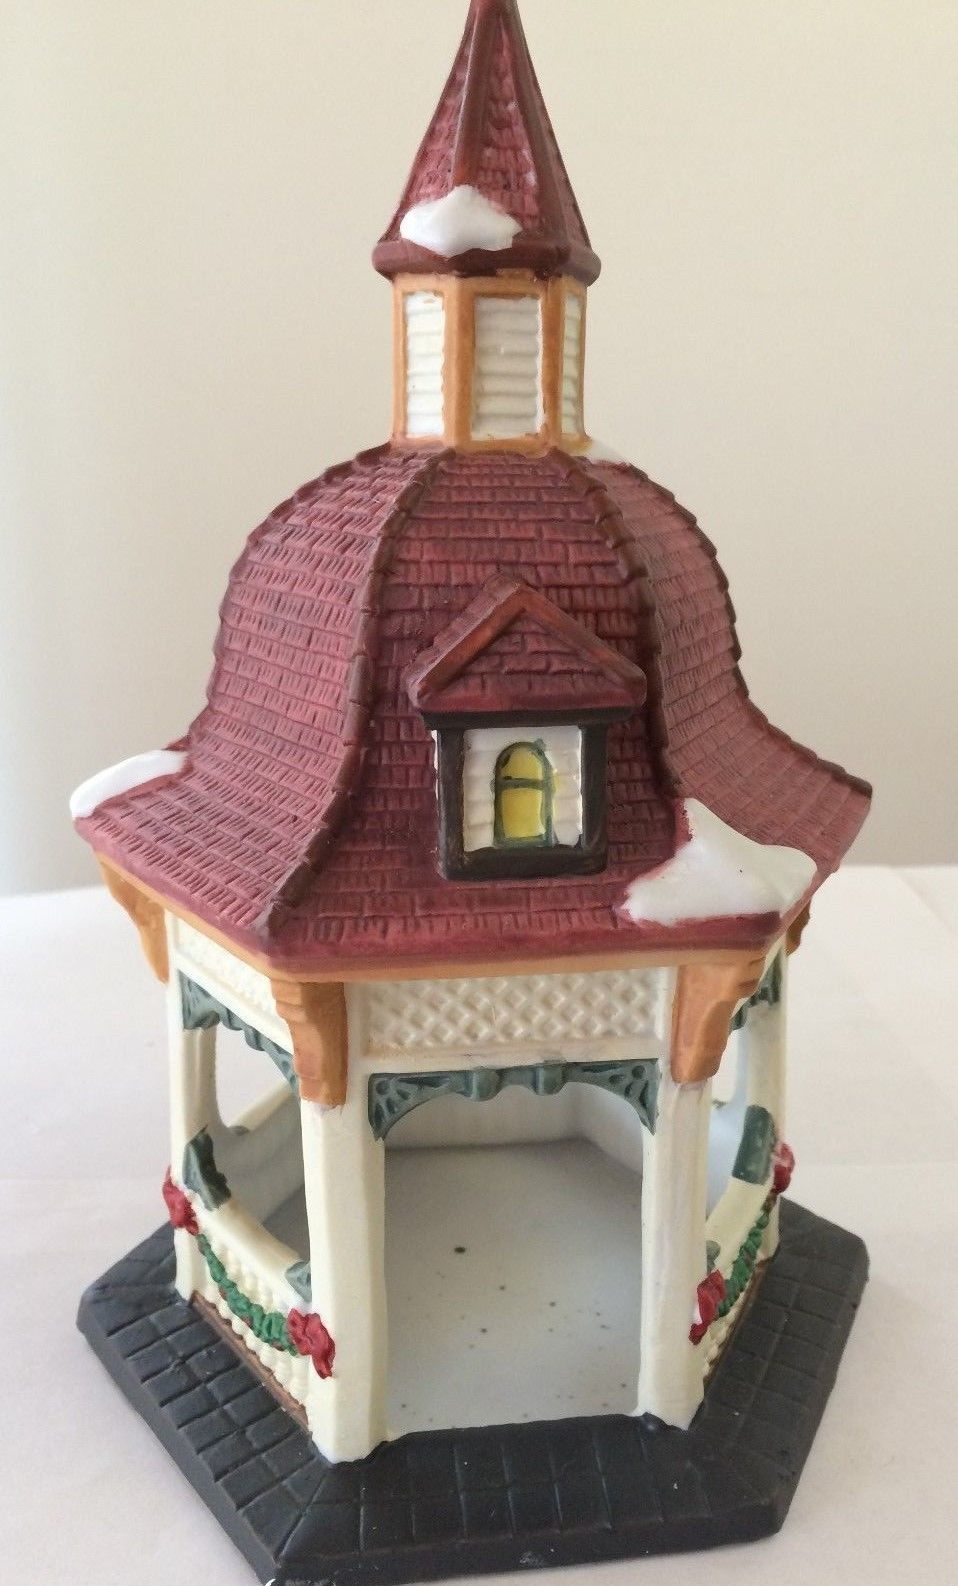 DICKENS COLLECTABLES TOWN SERIES PORCELAIN HAND-PAINTED GAZEBO W/ ORIGINAL BOX